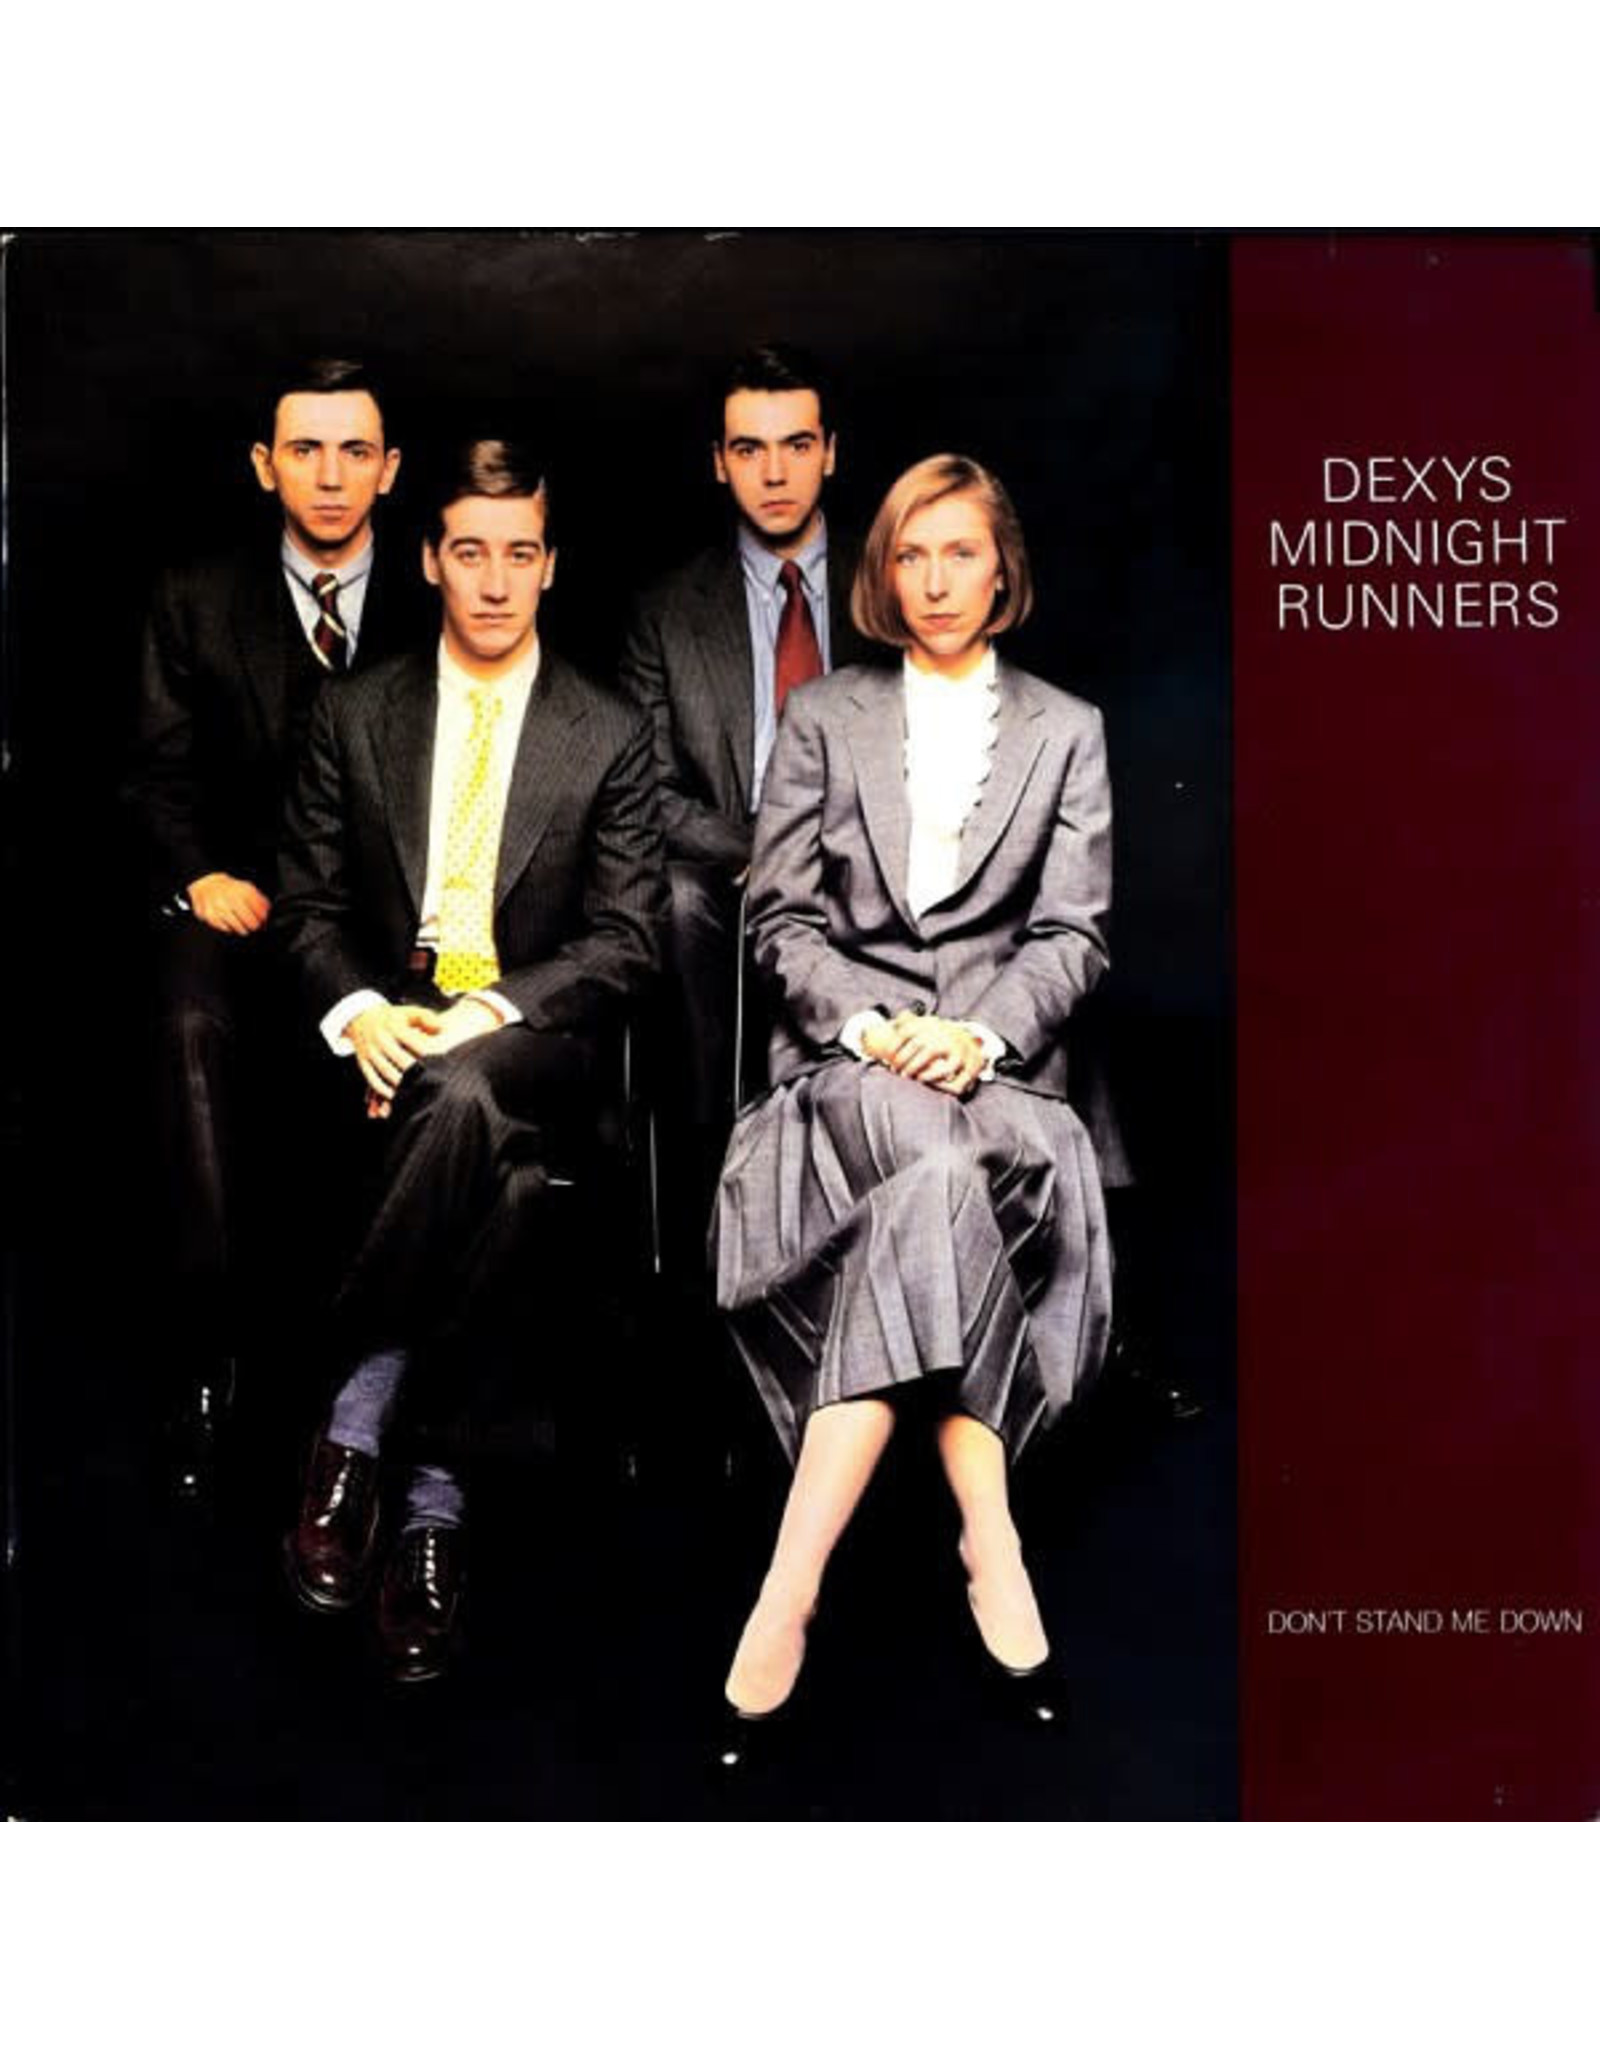 Dexy's Midnight Runners - Don't Stand Me Down (purple vinyl)